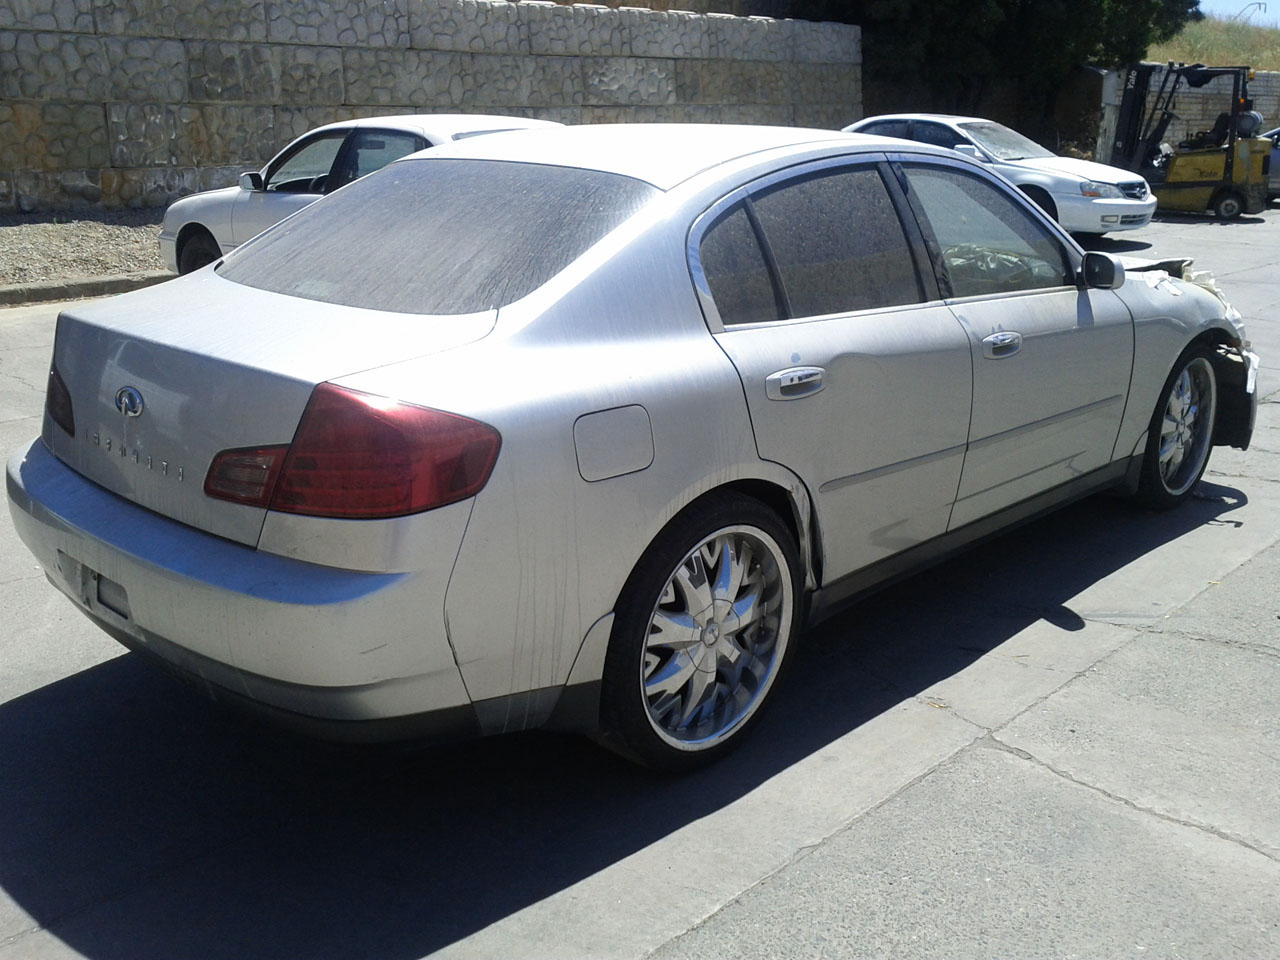 Infiniti g35 sedan 2004 for parts exreme auto parts request parts from this vehicle vanachro Gallery